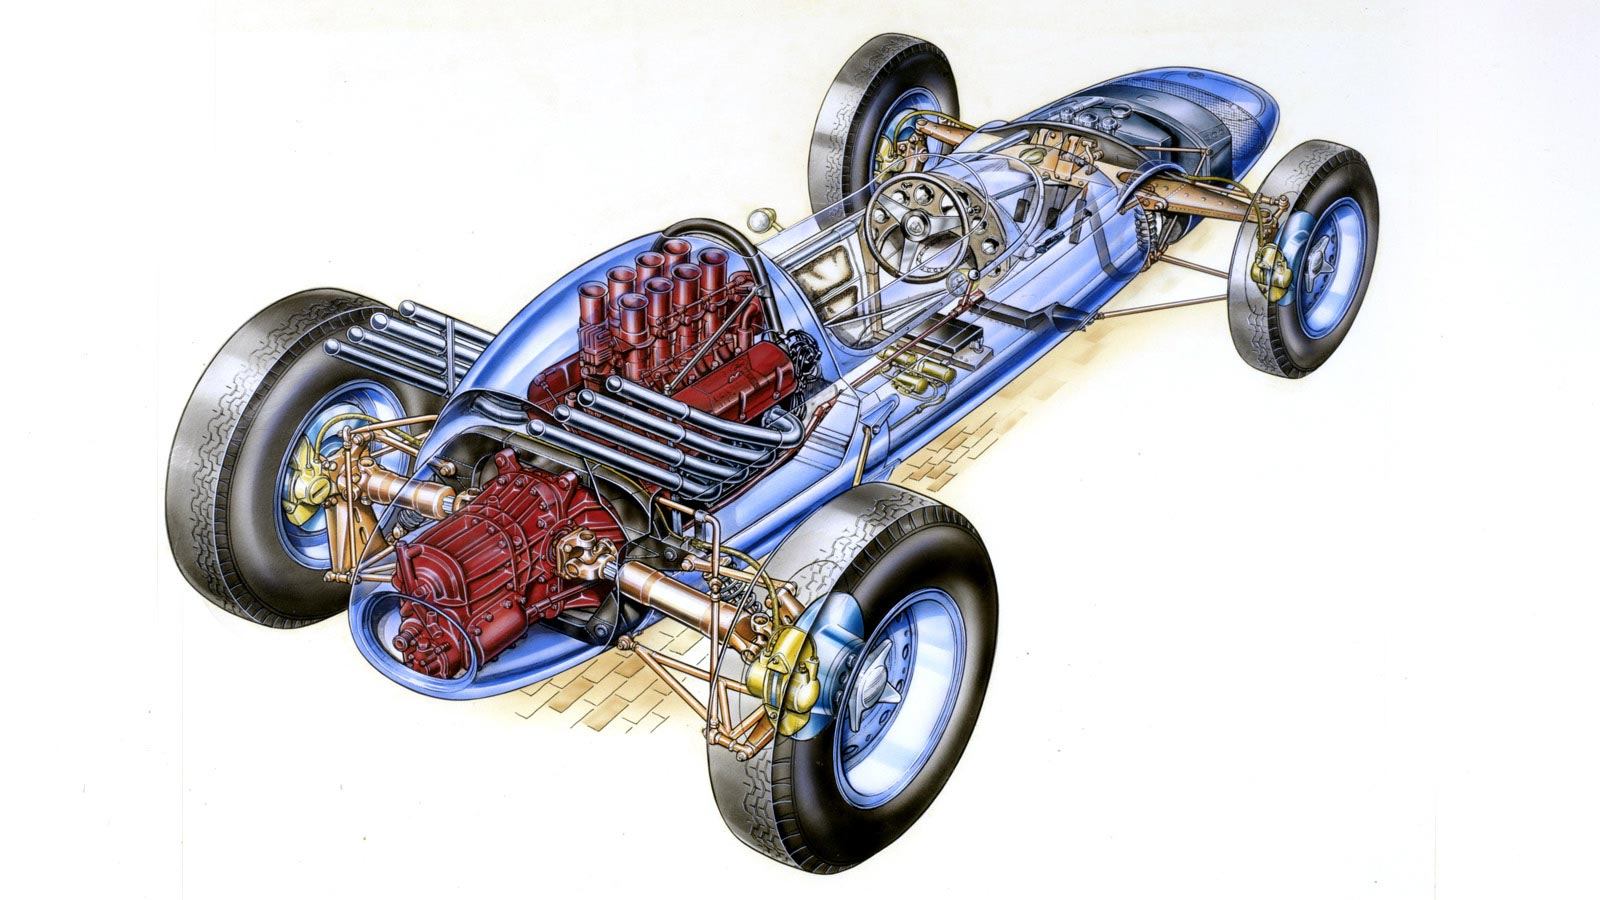 Lotus-Ford 29 Indianapolis racer cutaway drawing